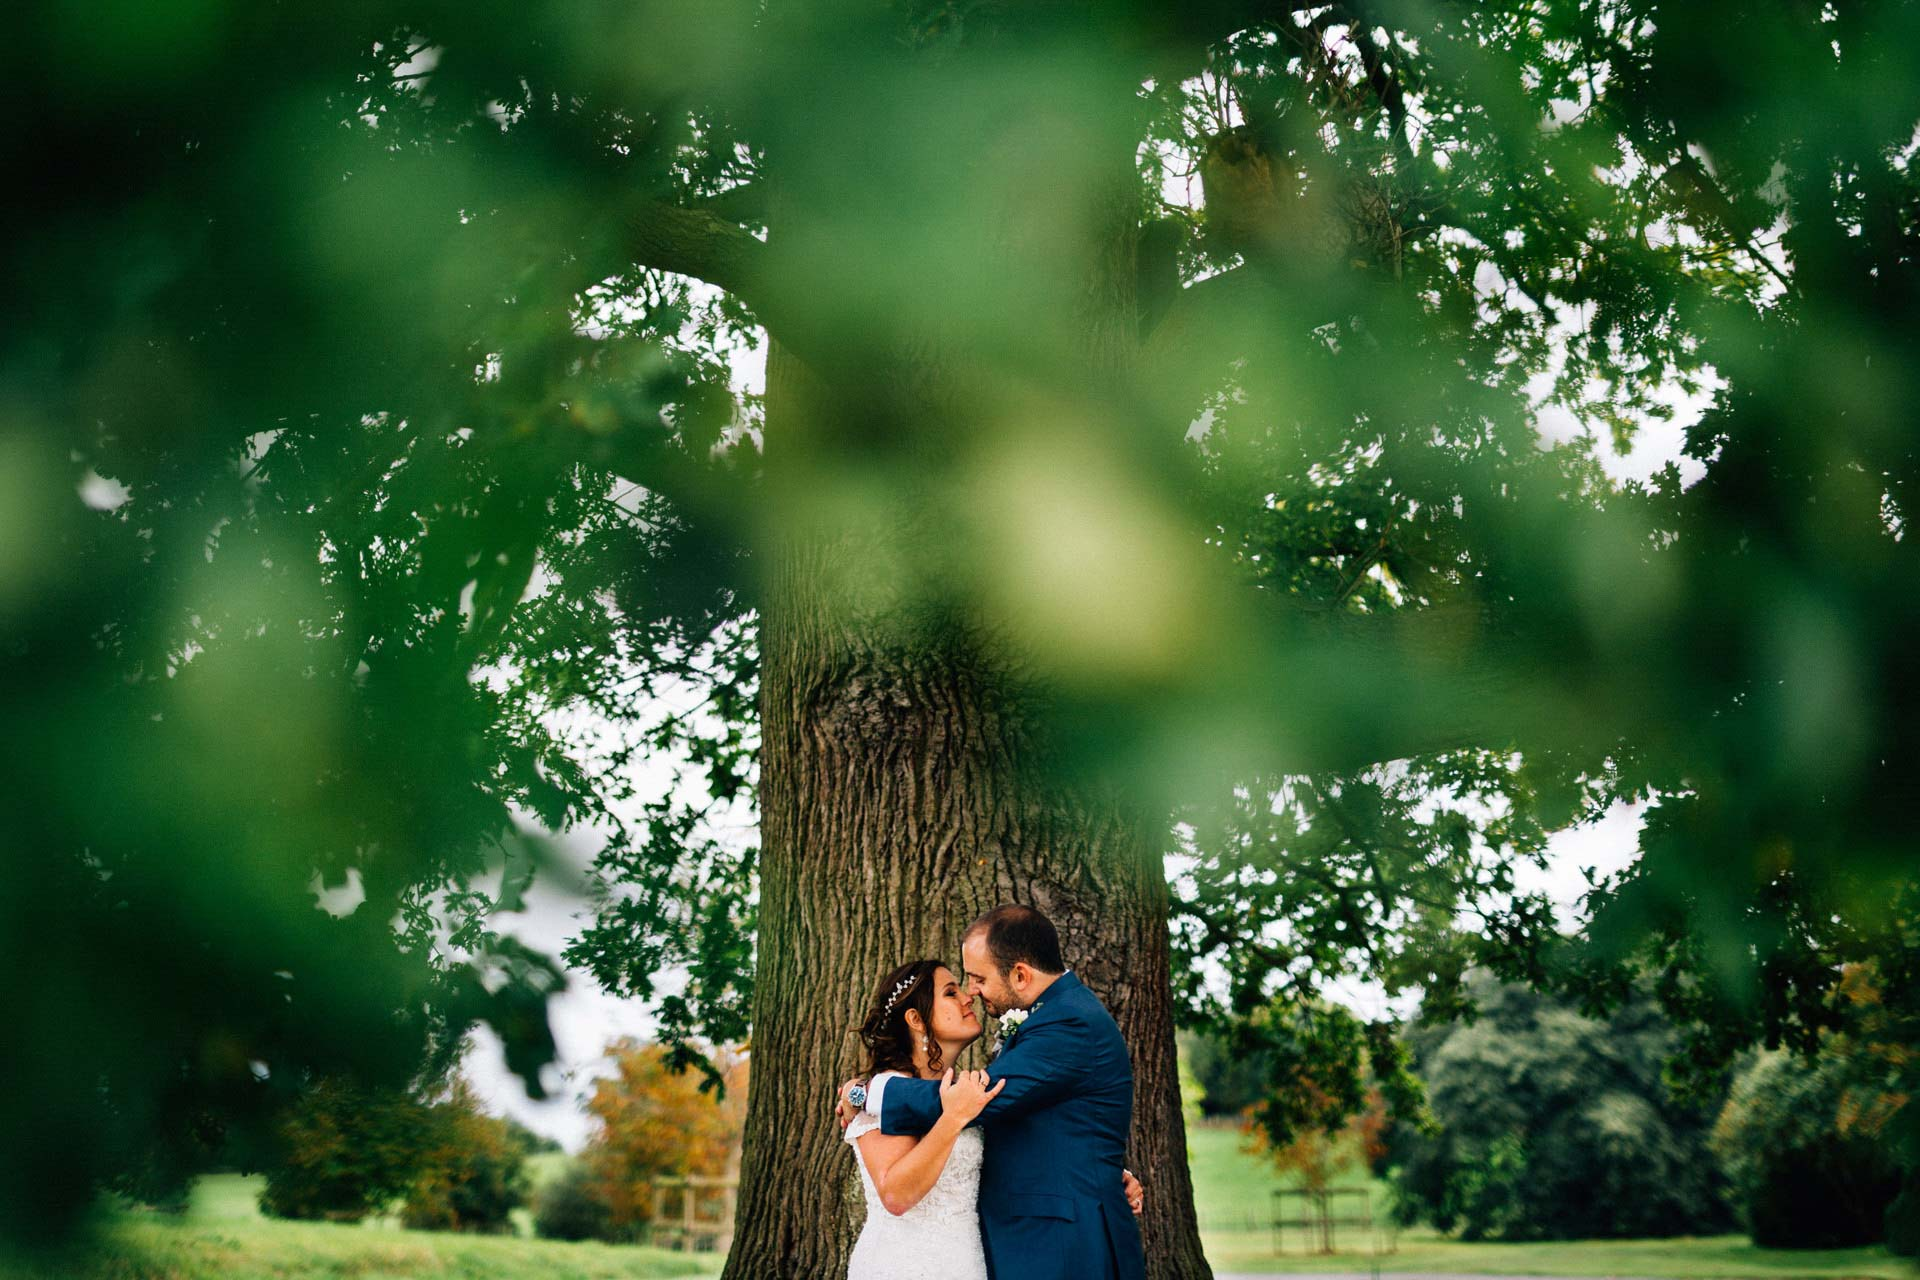 Best wedding photography 2016 - bride and groom under a big oak tree